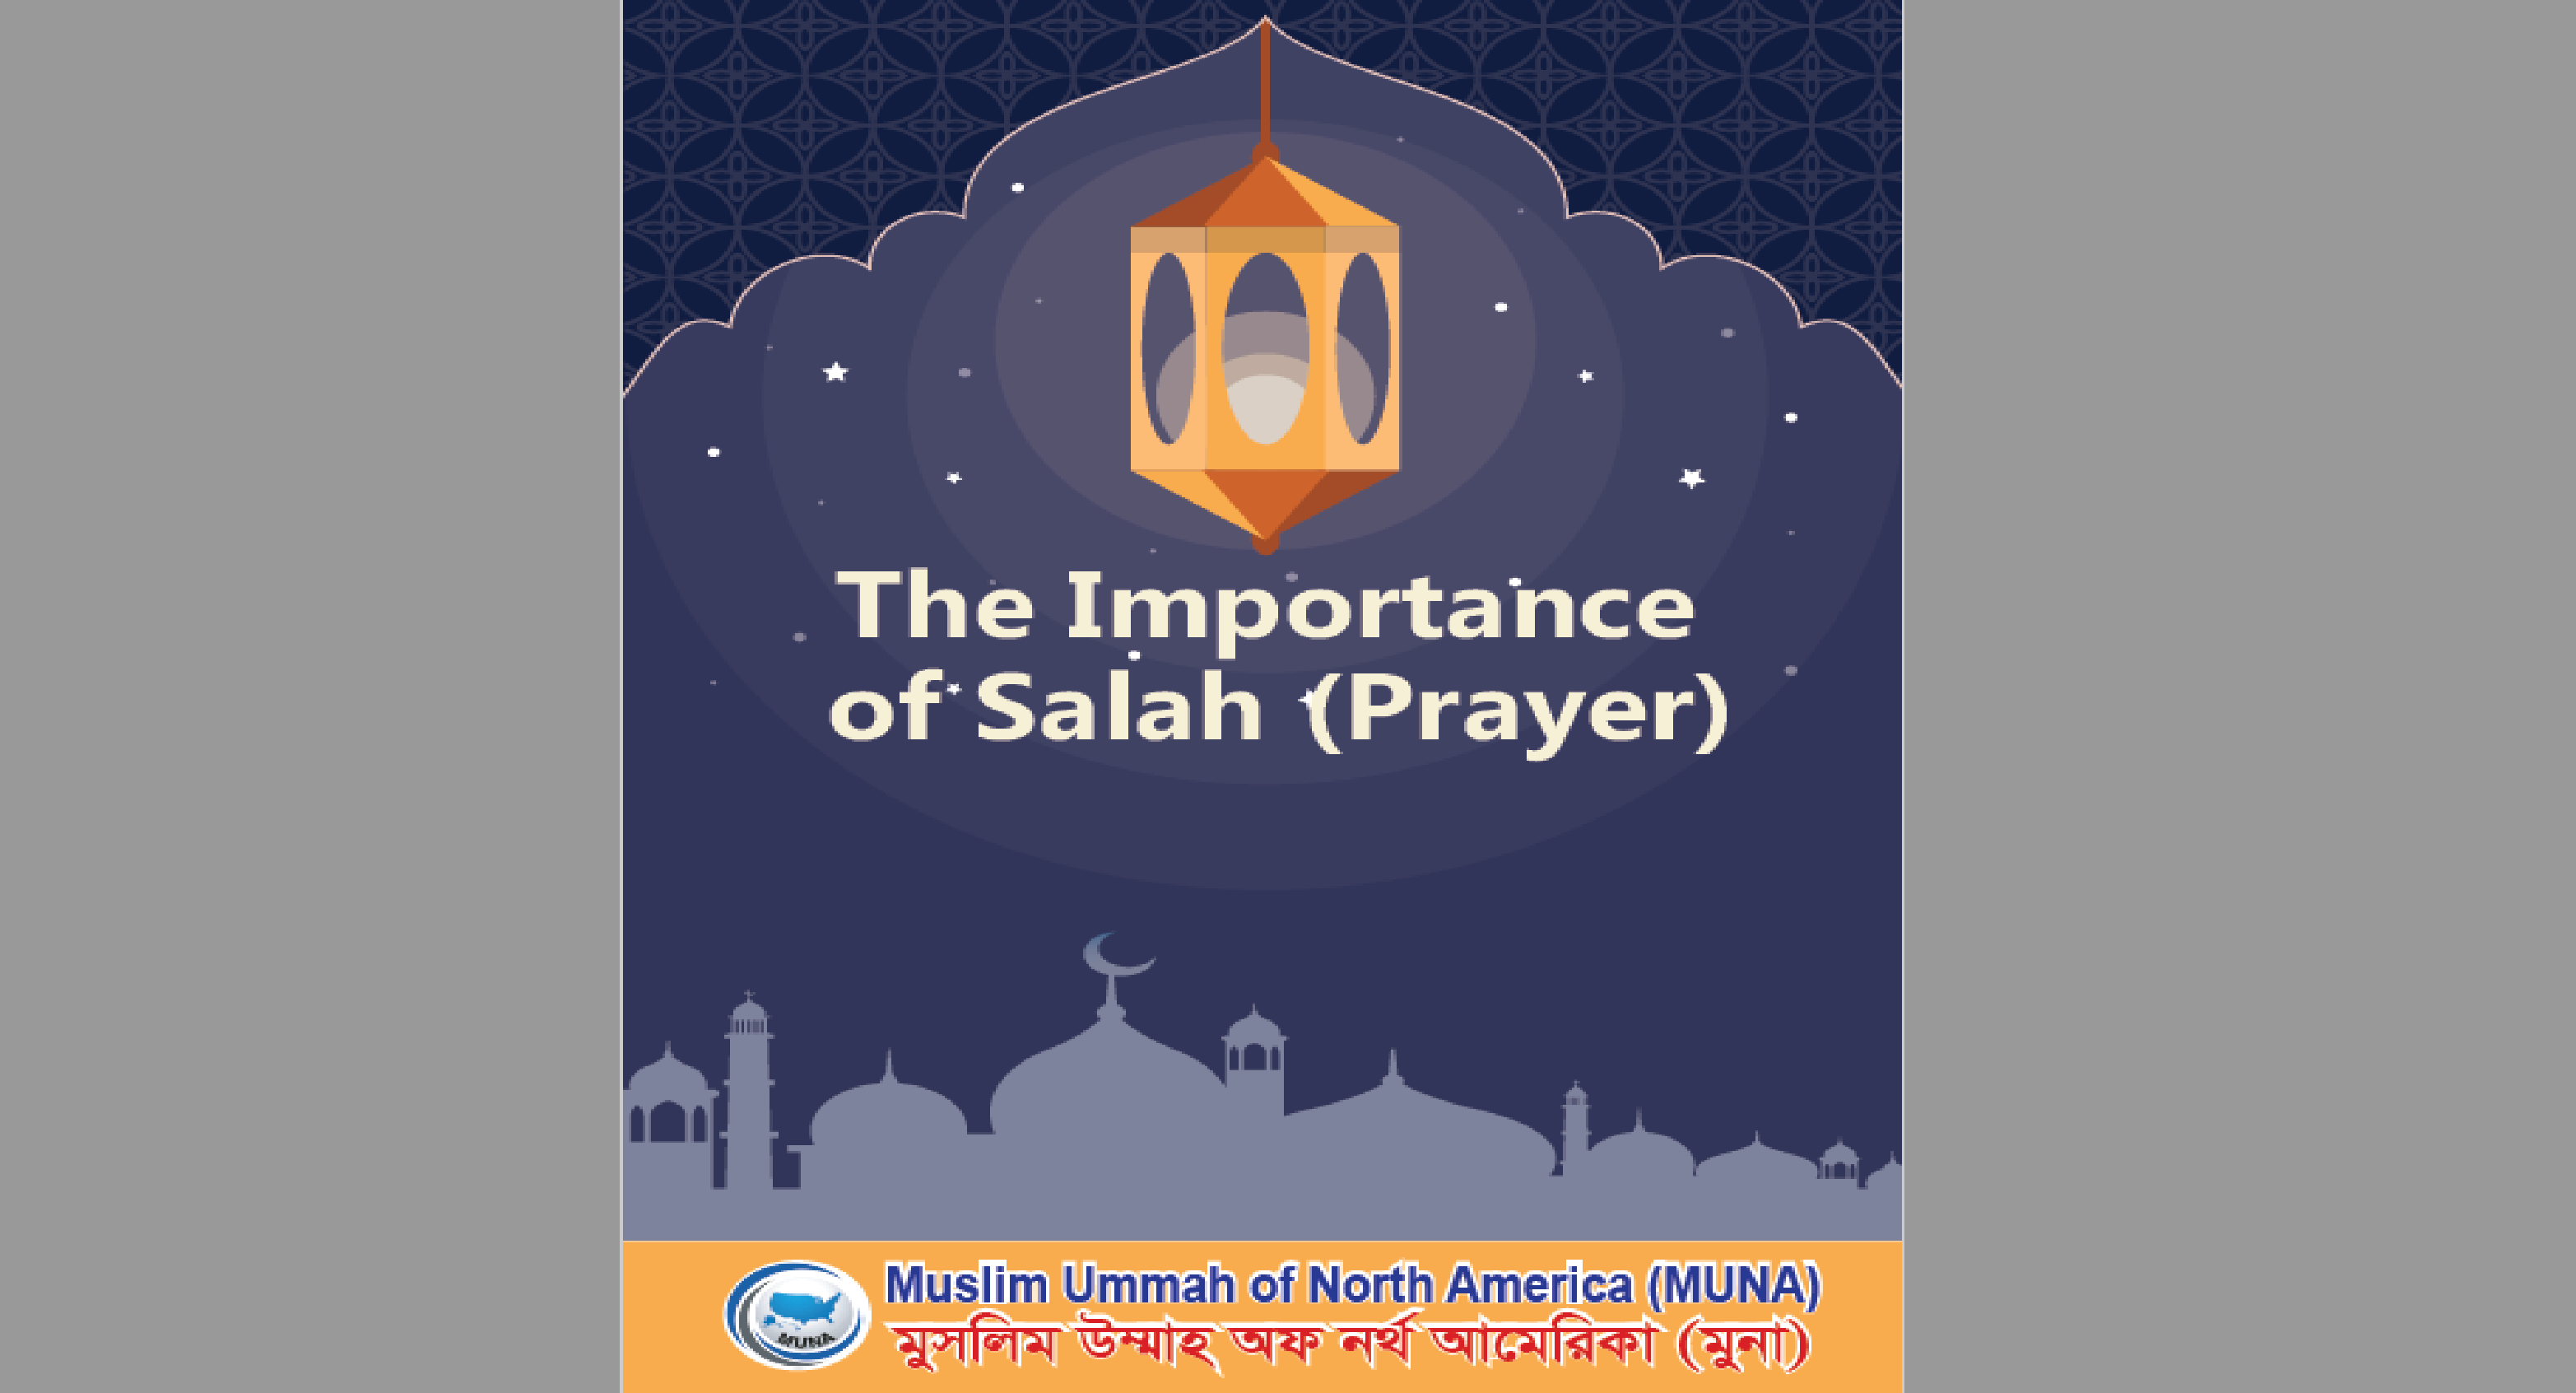 The Importance of Salah